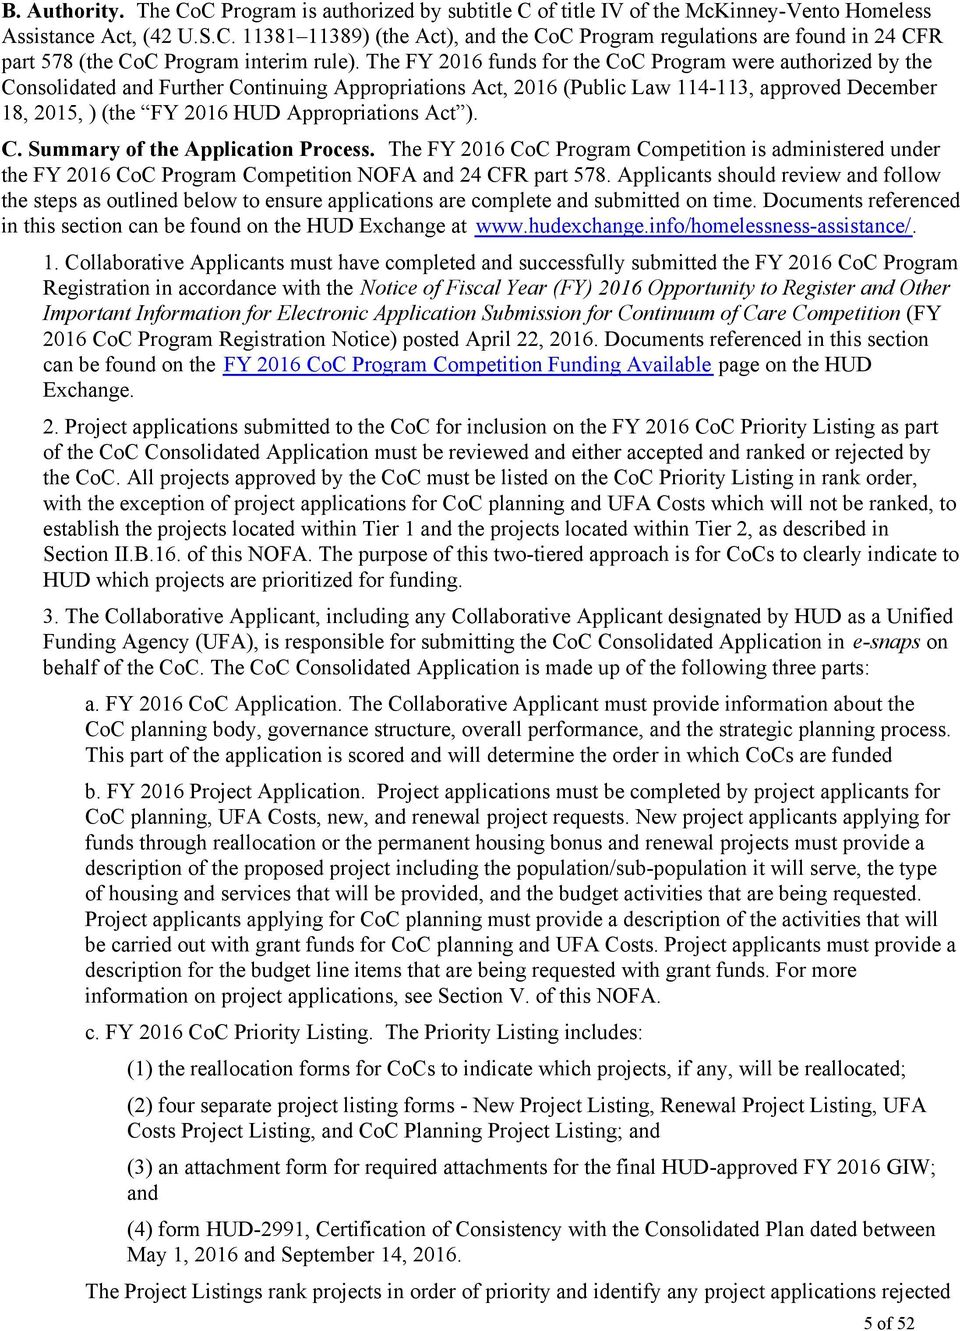 Appropriations Act ). C. Summary of the Application Process. The FY 2016 CoC Program Competition is administered under the FY 2016 CoC Program Competition NOFA and 24 CFR part 578.